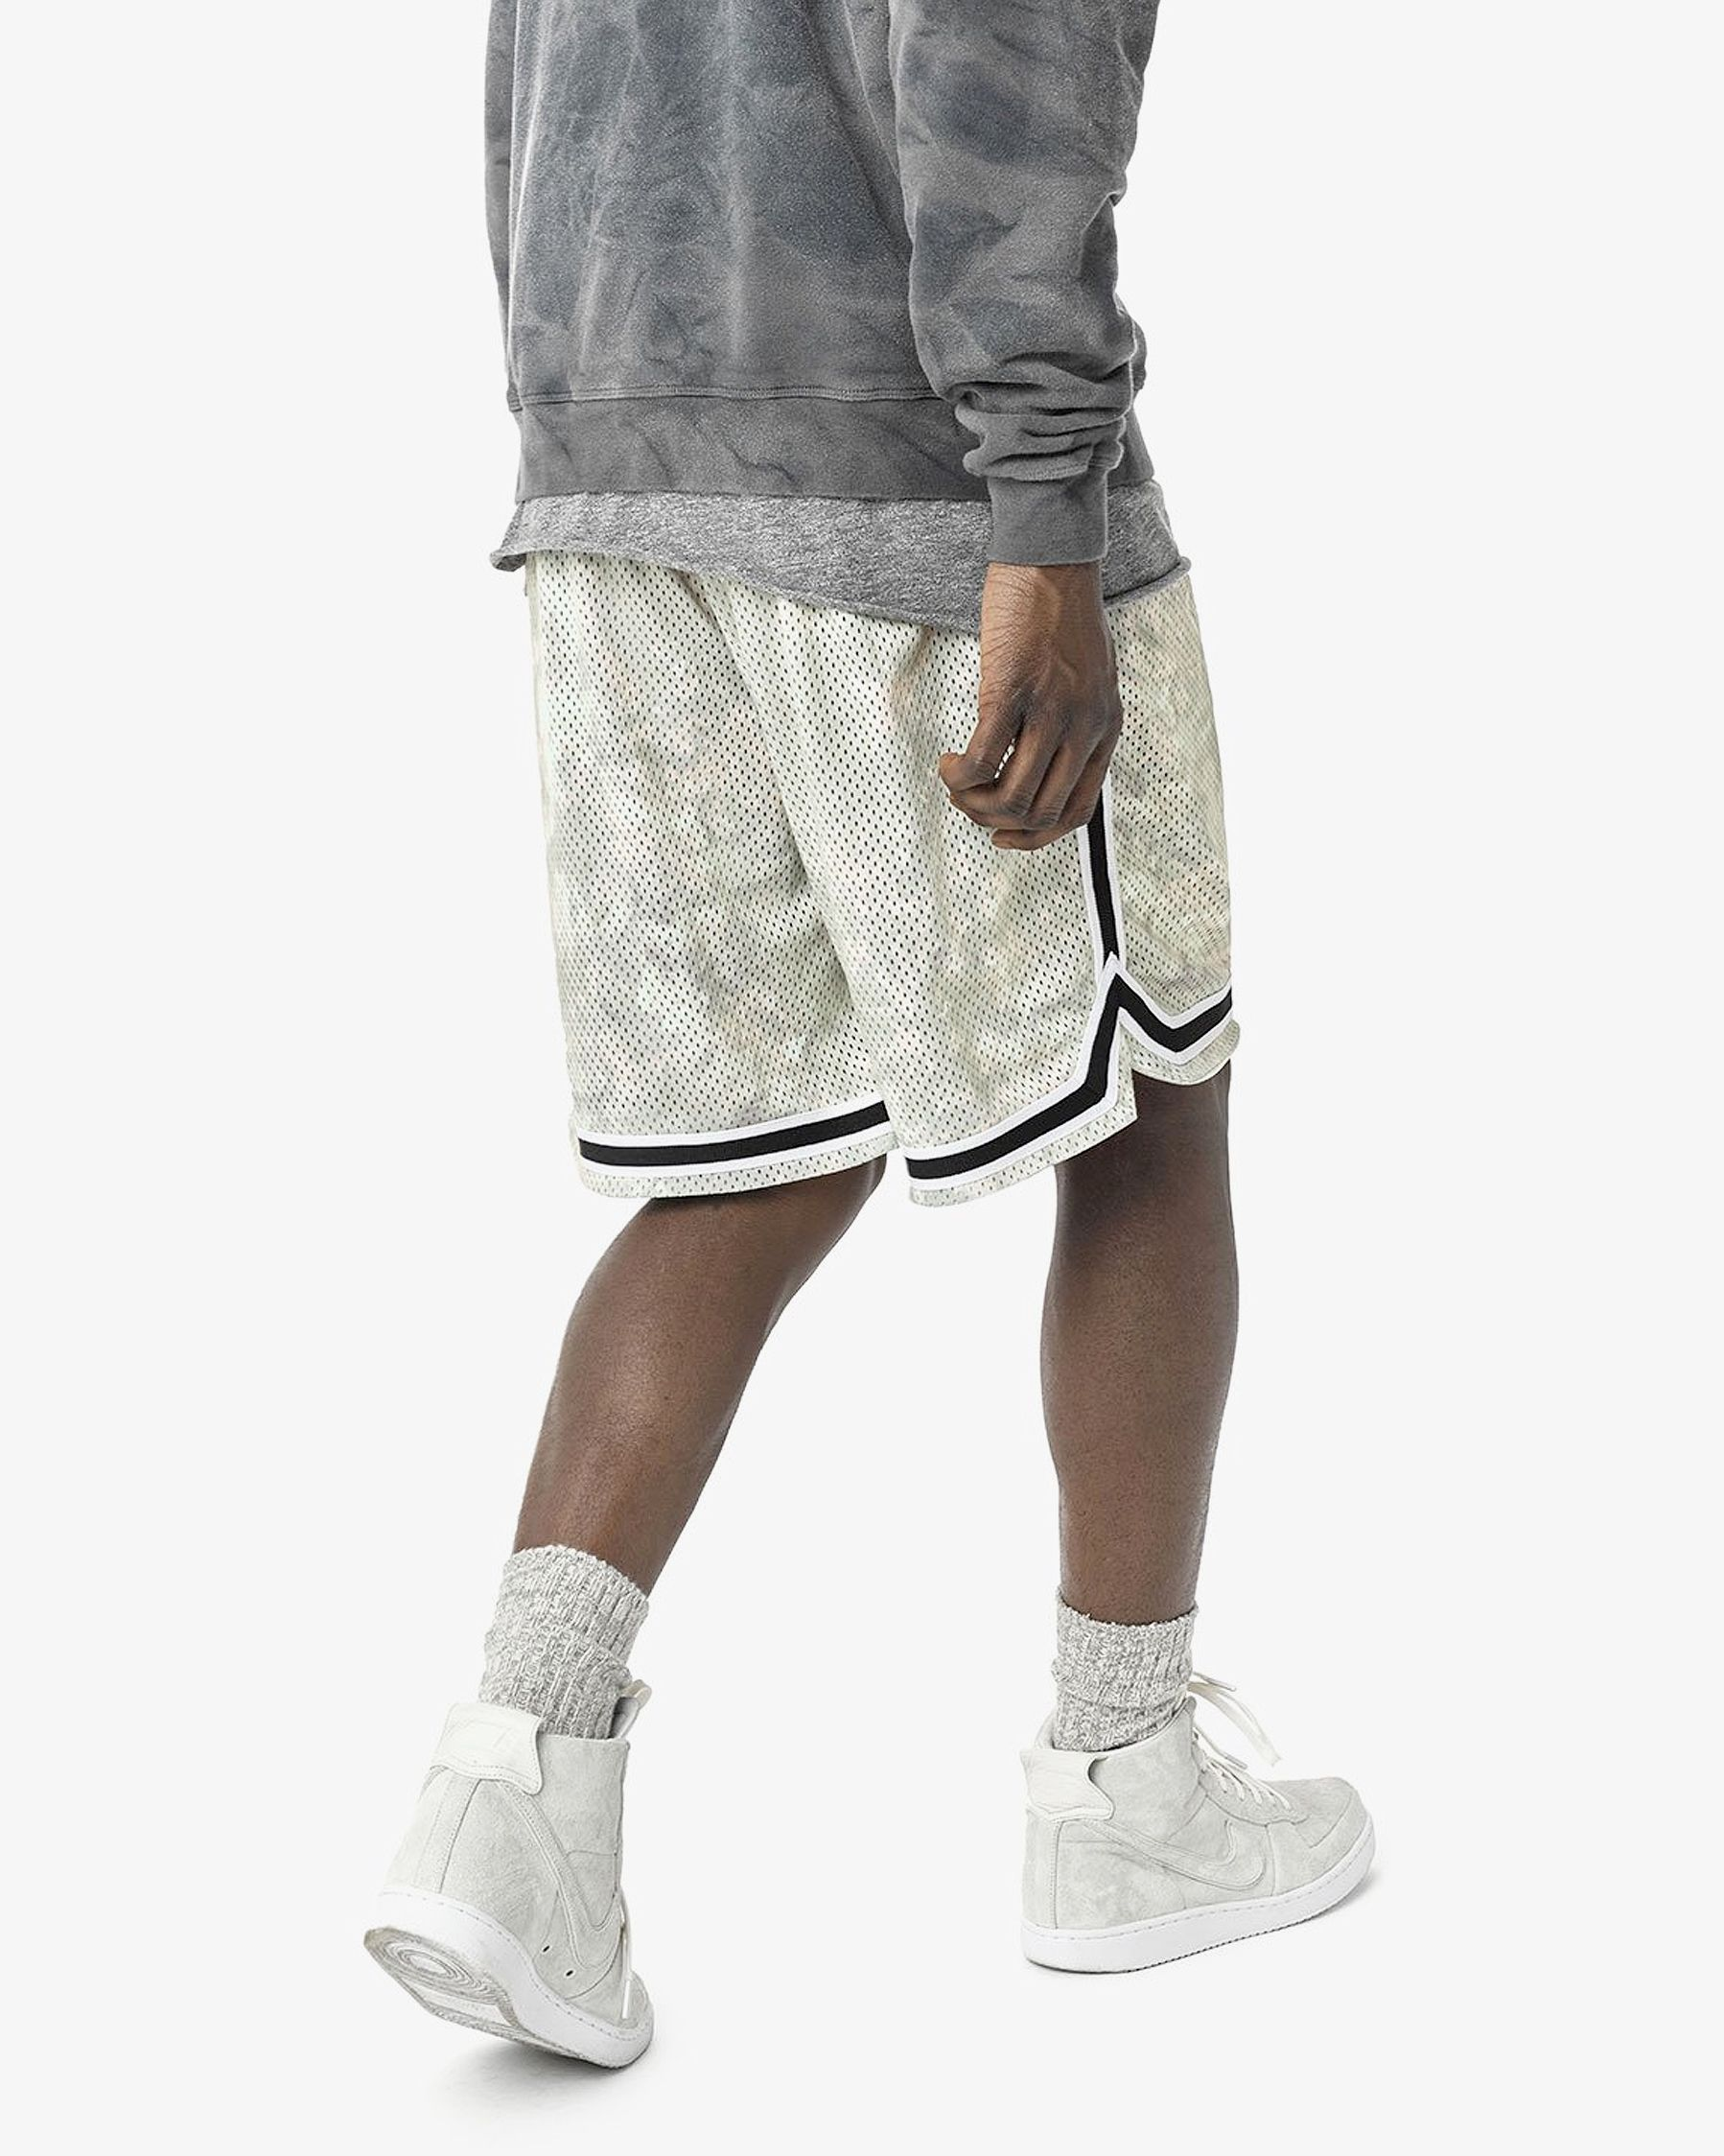 e4c61f6fc39 Receive your John Elliott Basketball Shorts Tie-dye C021D3447A to your  place in 2-5 working days. Cop the best limited edition products in our  online store!